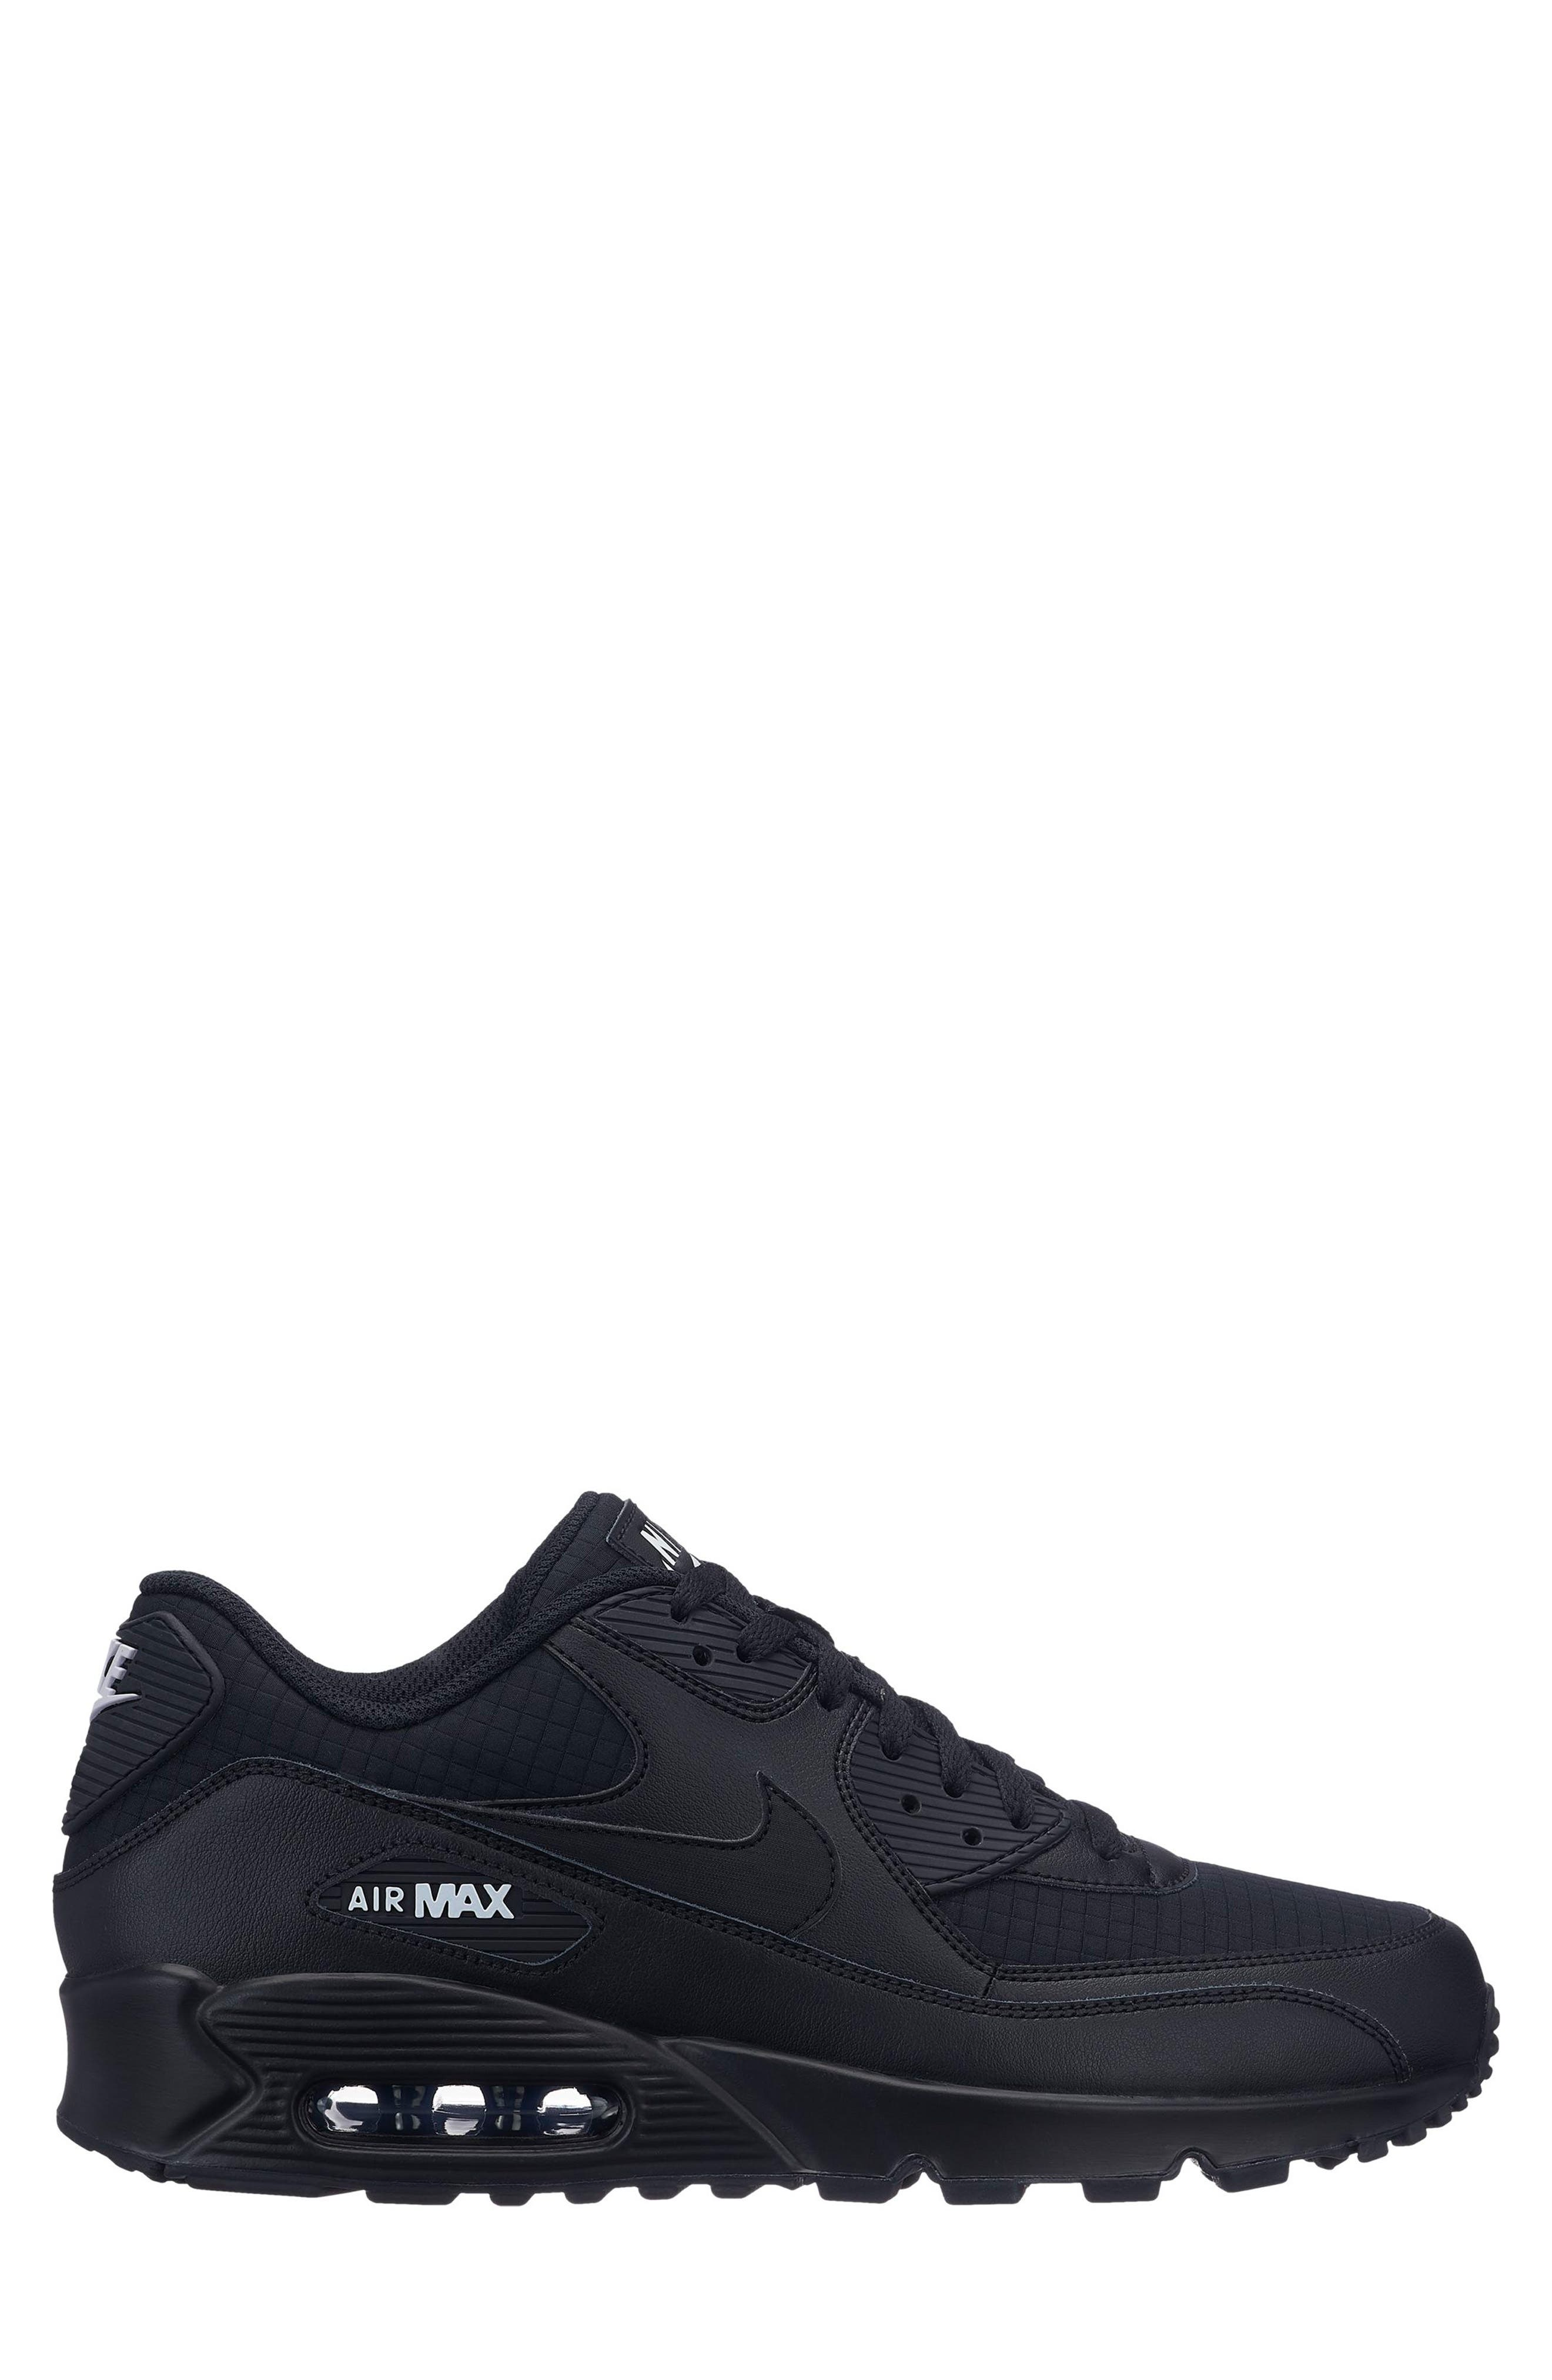 new product 457a2 b3190 ... closeout nike air max 90 essential sneaker men 29483 68865